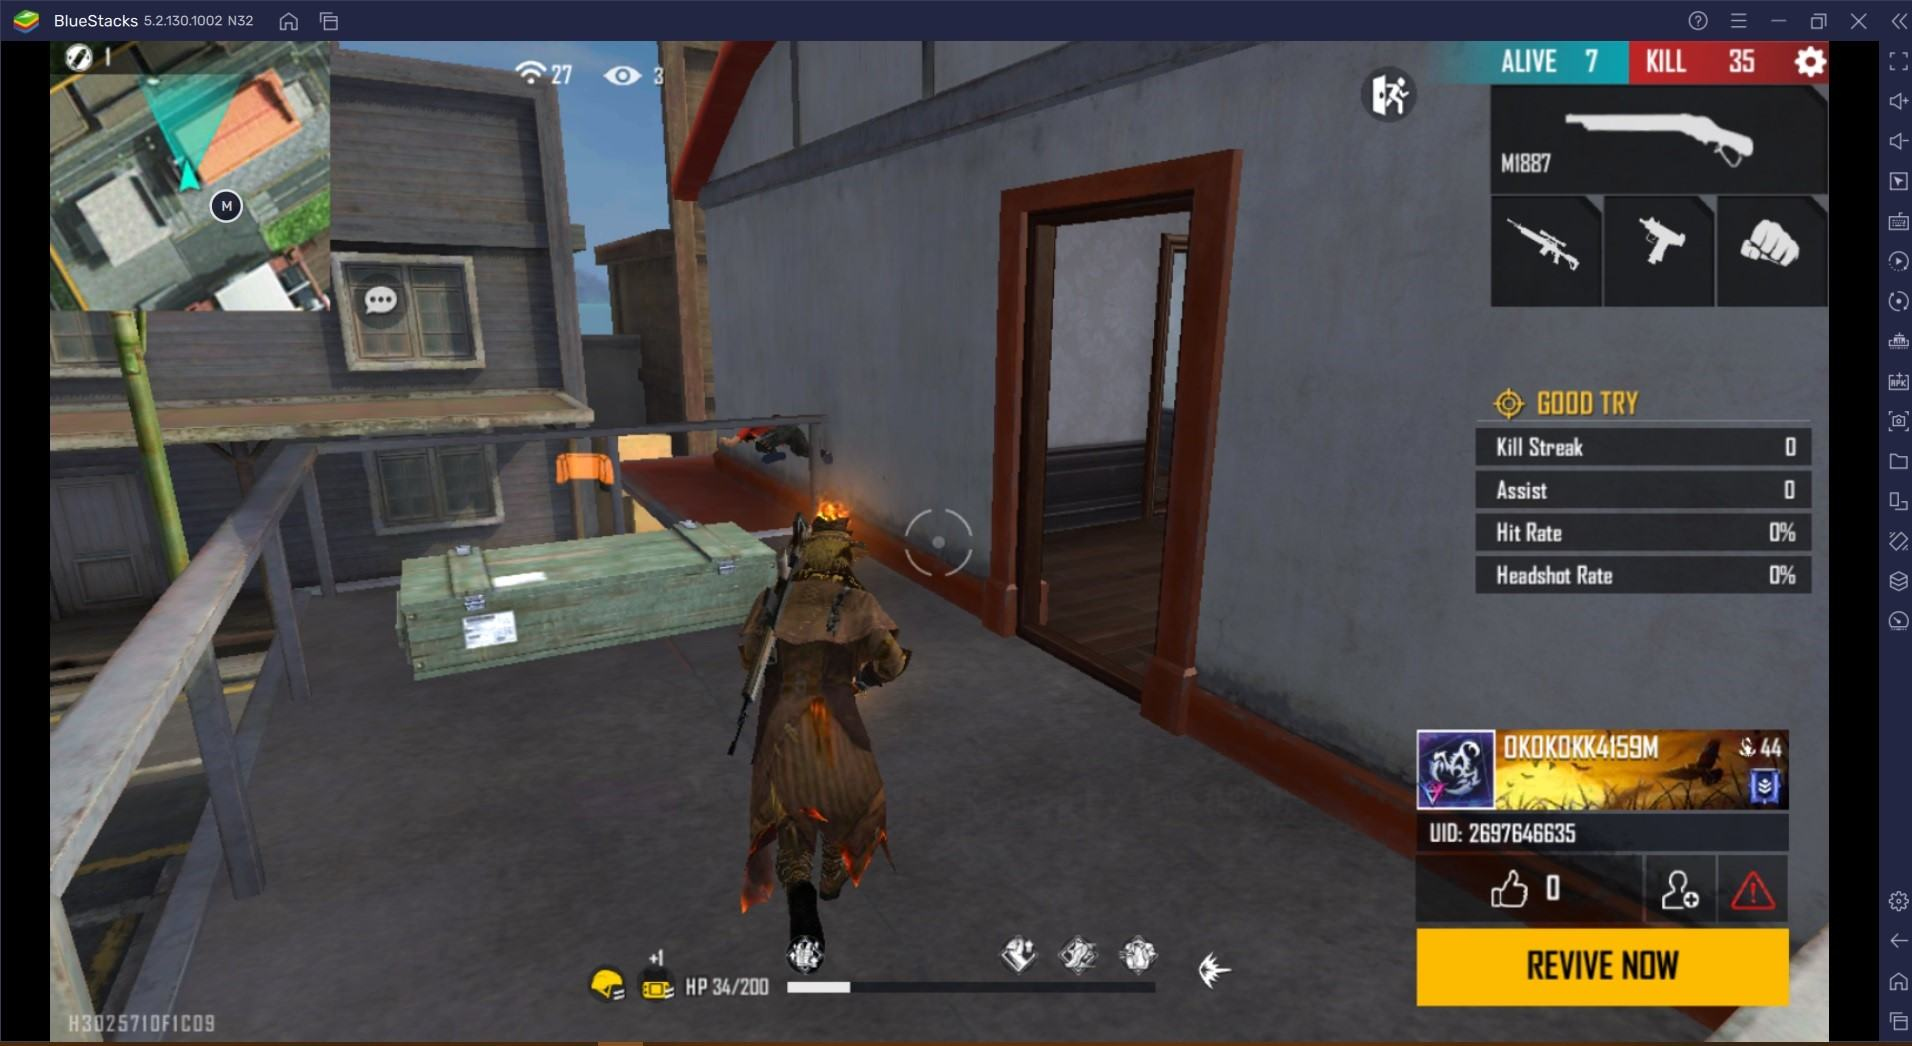 Free Fire Weapon Guide: M1887 Is the Most Useful Gun for You